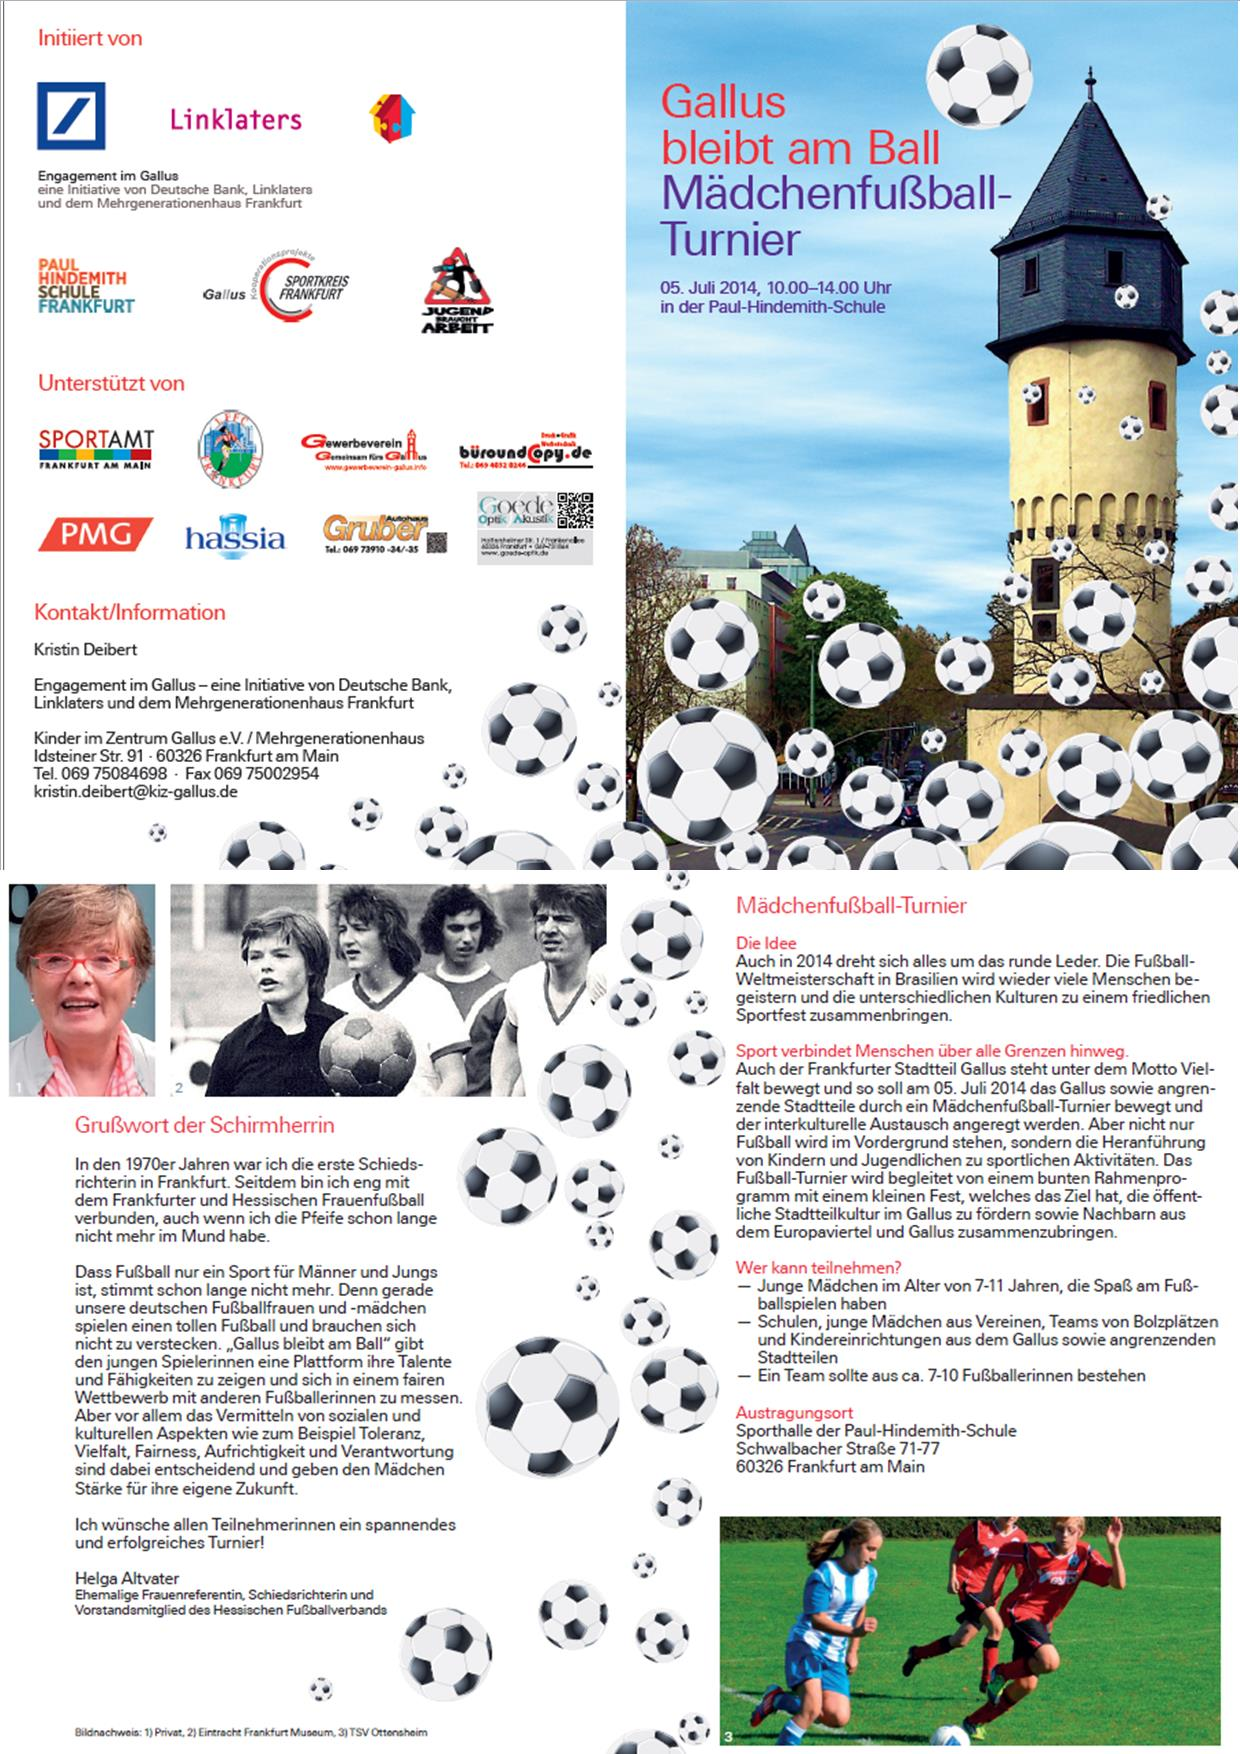 Flyer_Gallus bleibt am Ball 2014